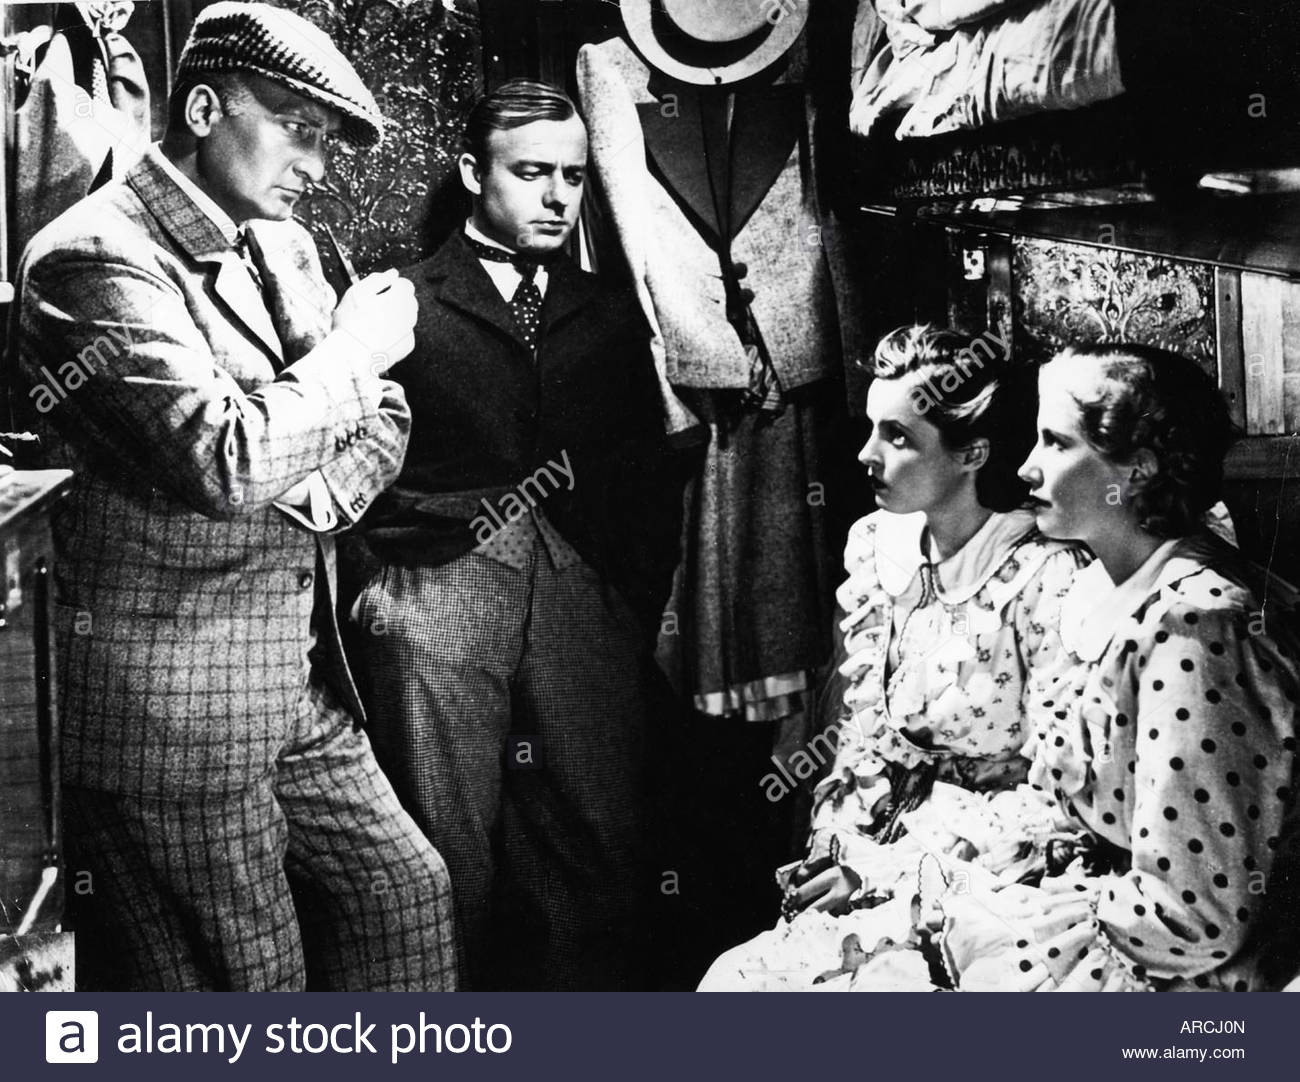 'movie, 'The Man Who Was Sherlock Holmes' (Der Mann der Sherlock Holmes war), DEU 1937, director: Karl - Stock Image